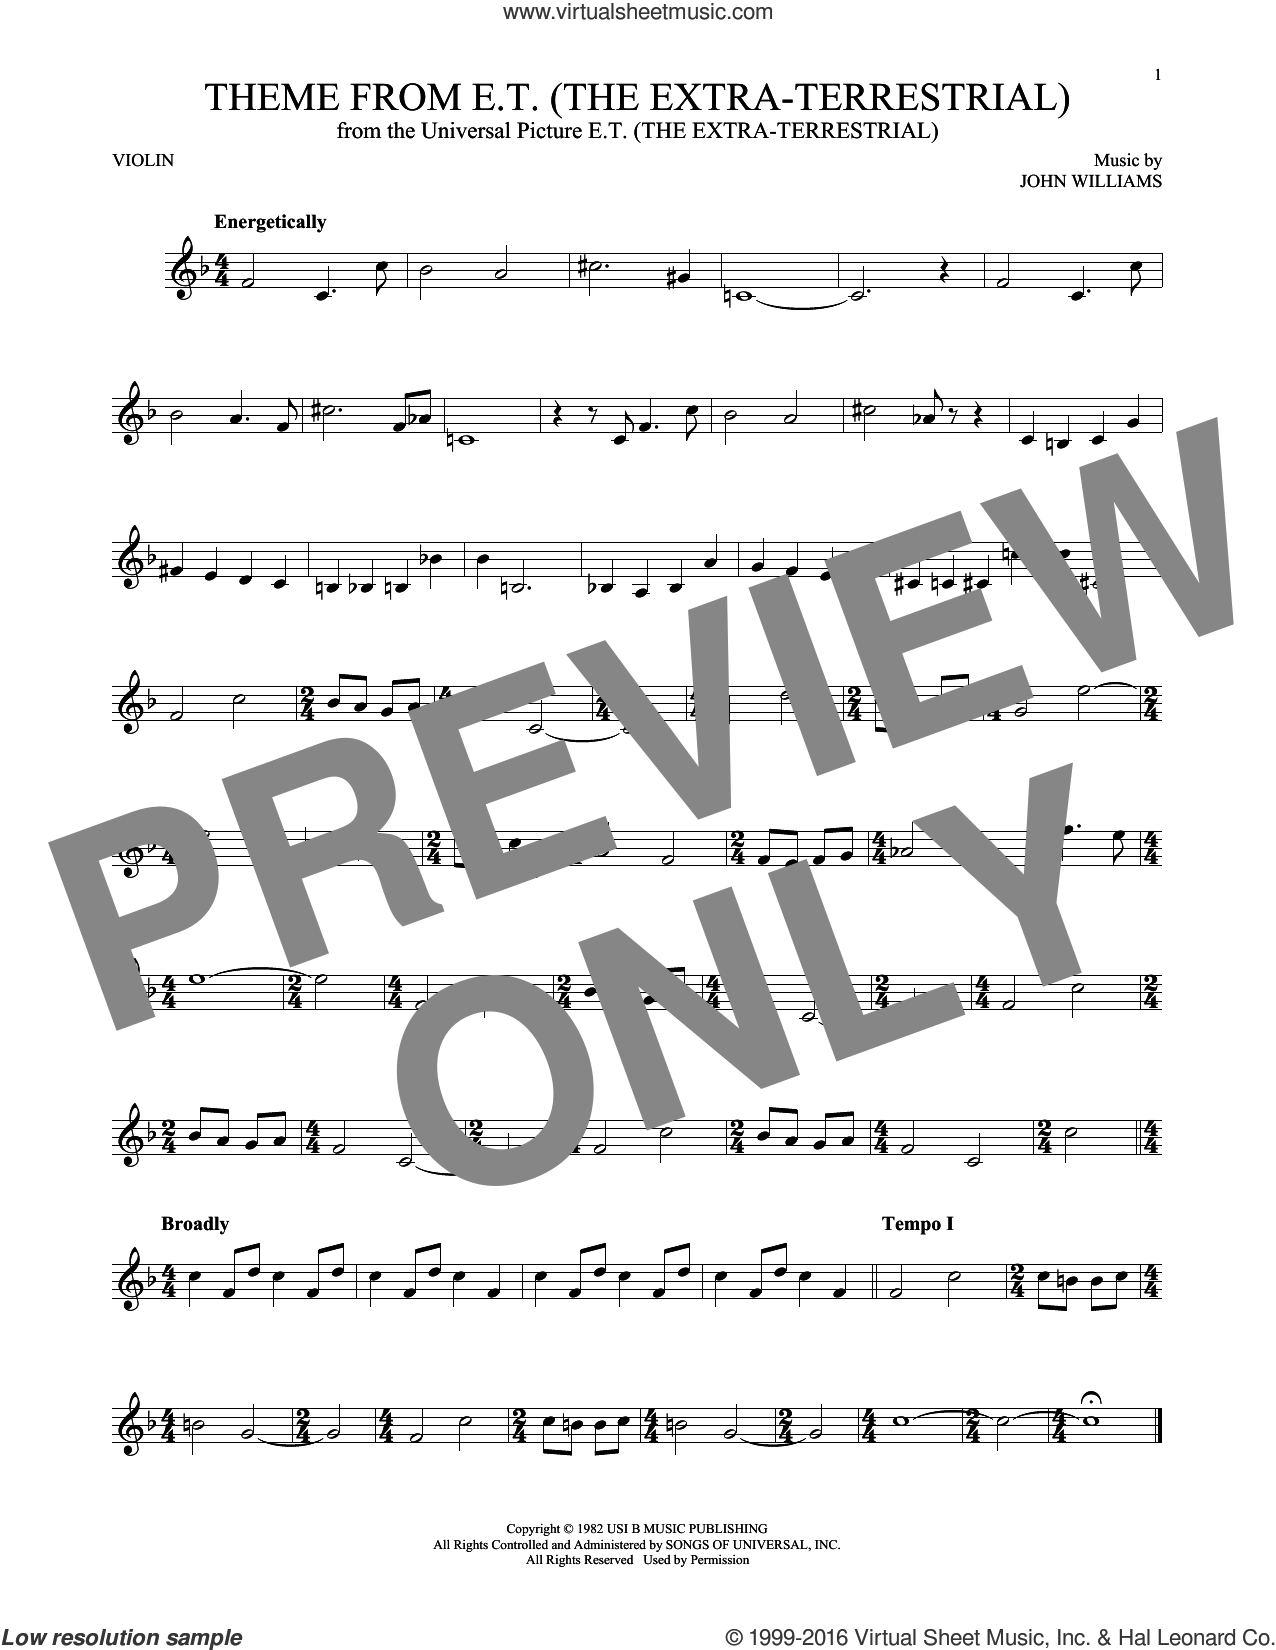 Theme From E.T. (The Extra-Terrestrial) sheet music for violin solo by John Williams. Score Image Preview.